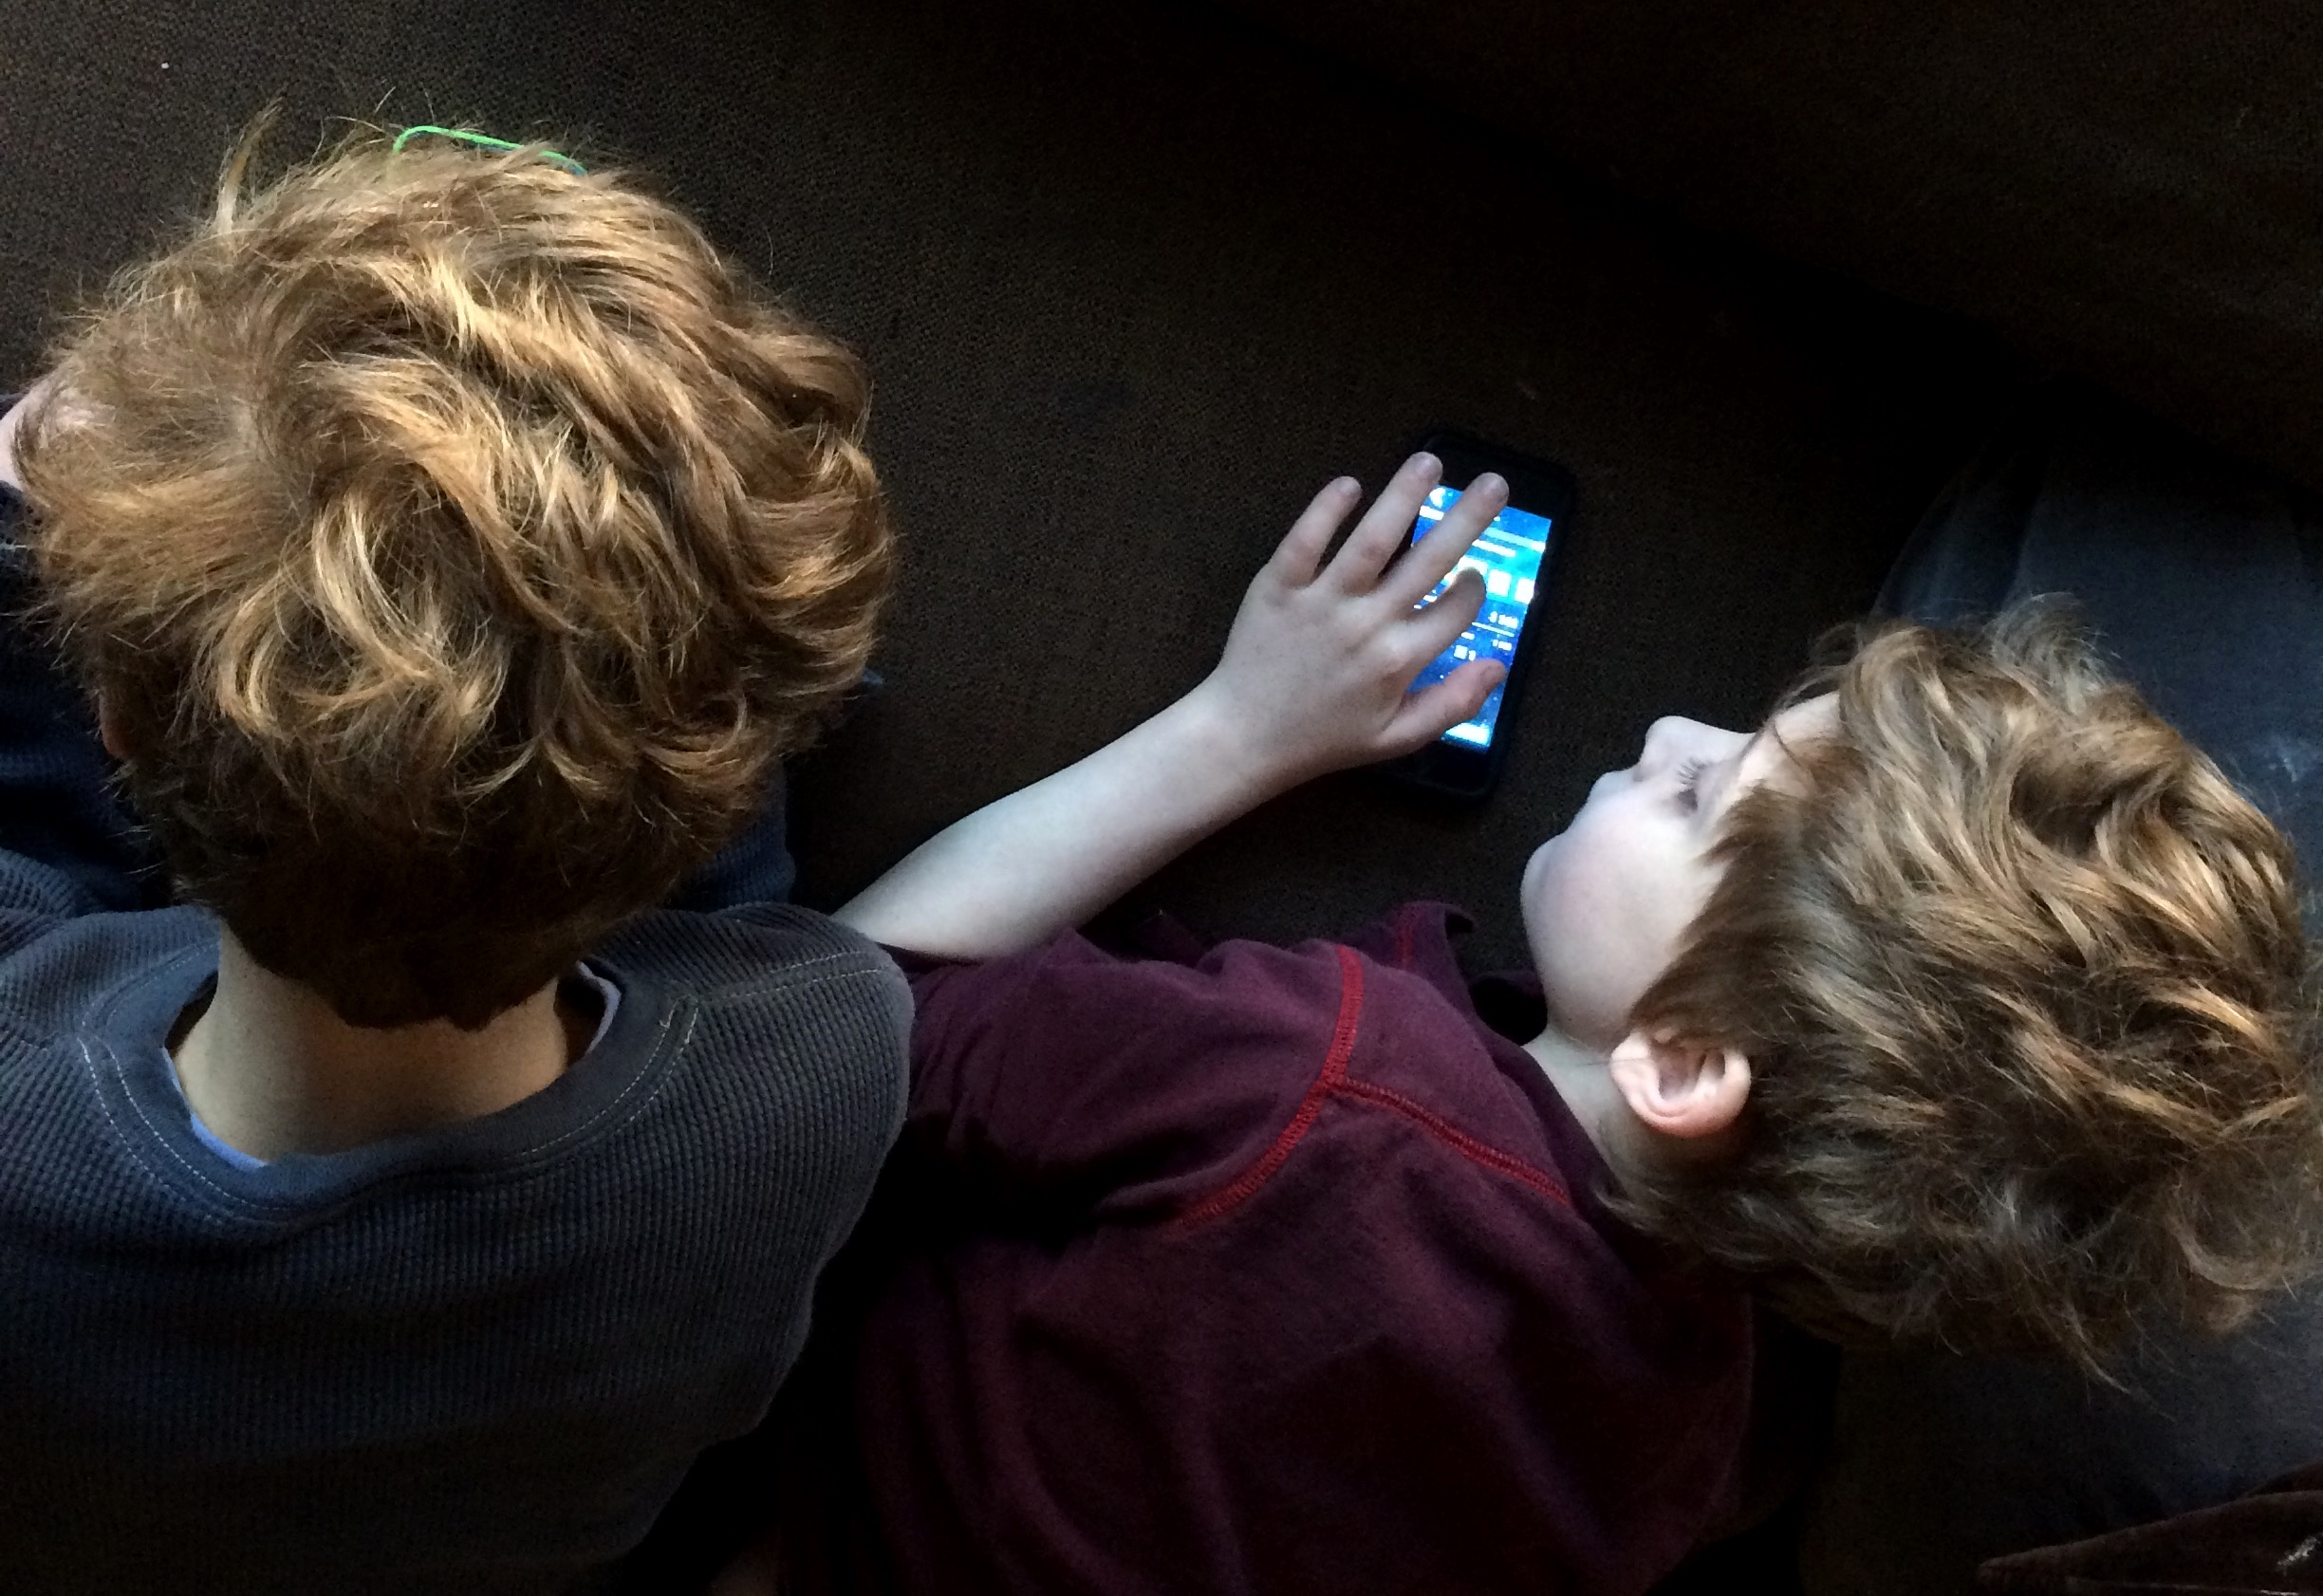 M and C, twin brothers, playing electronic devices next to each other